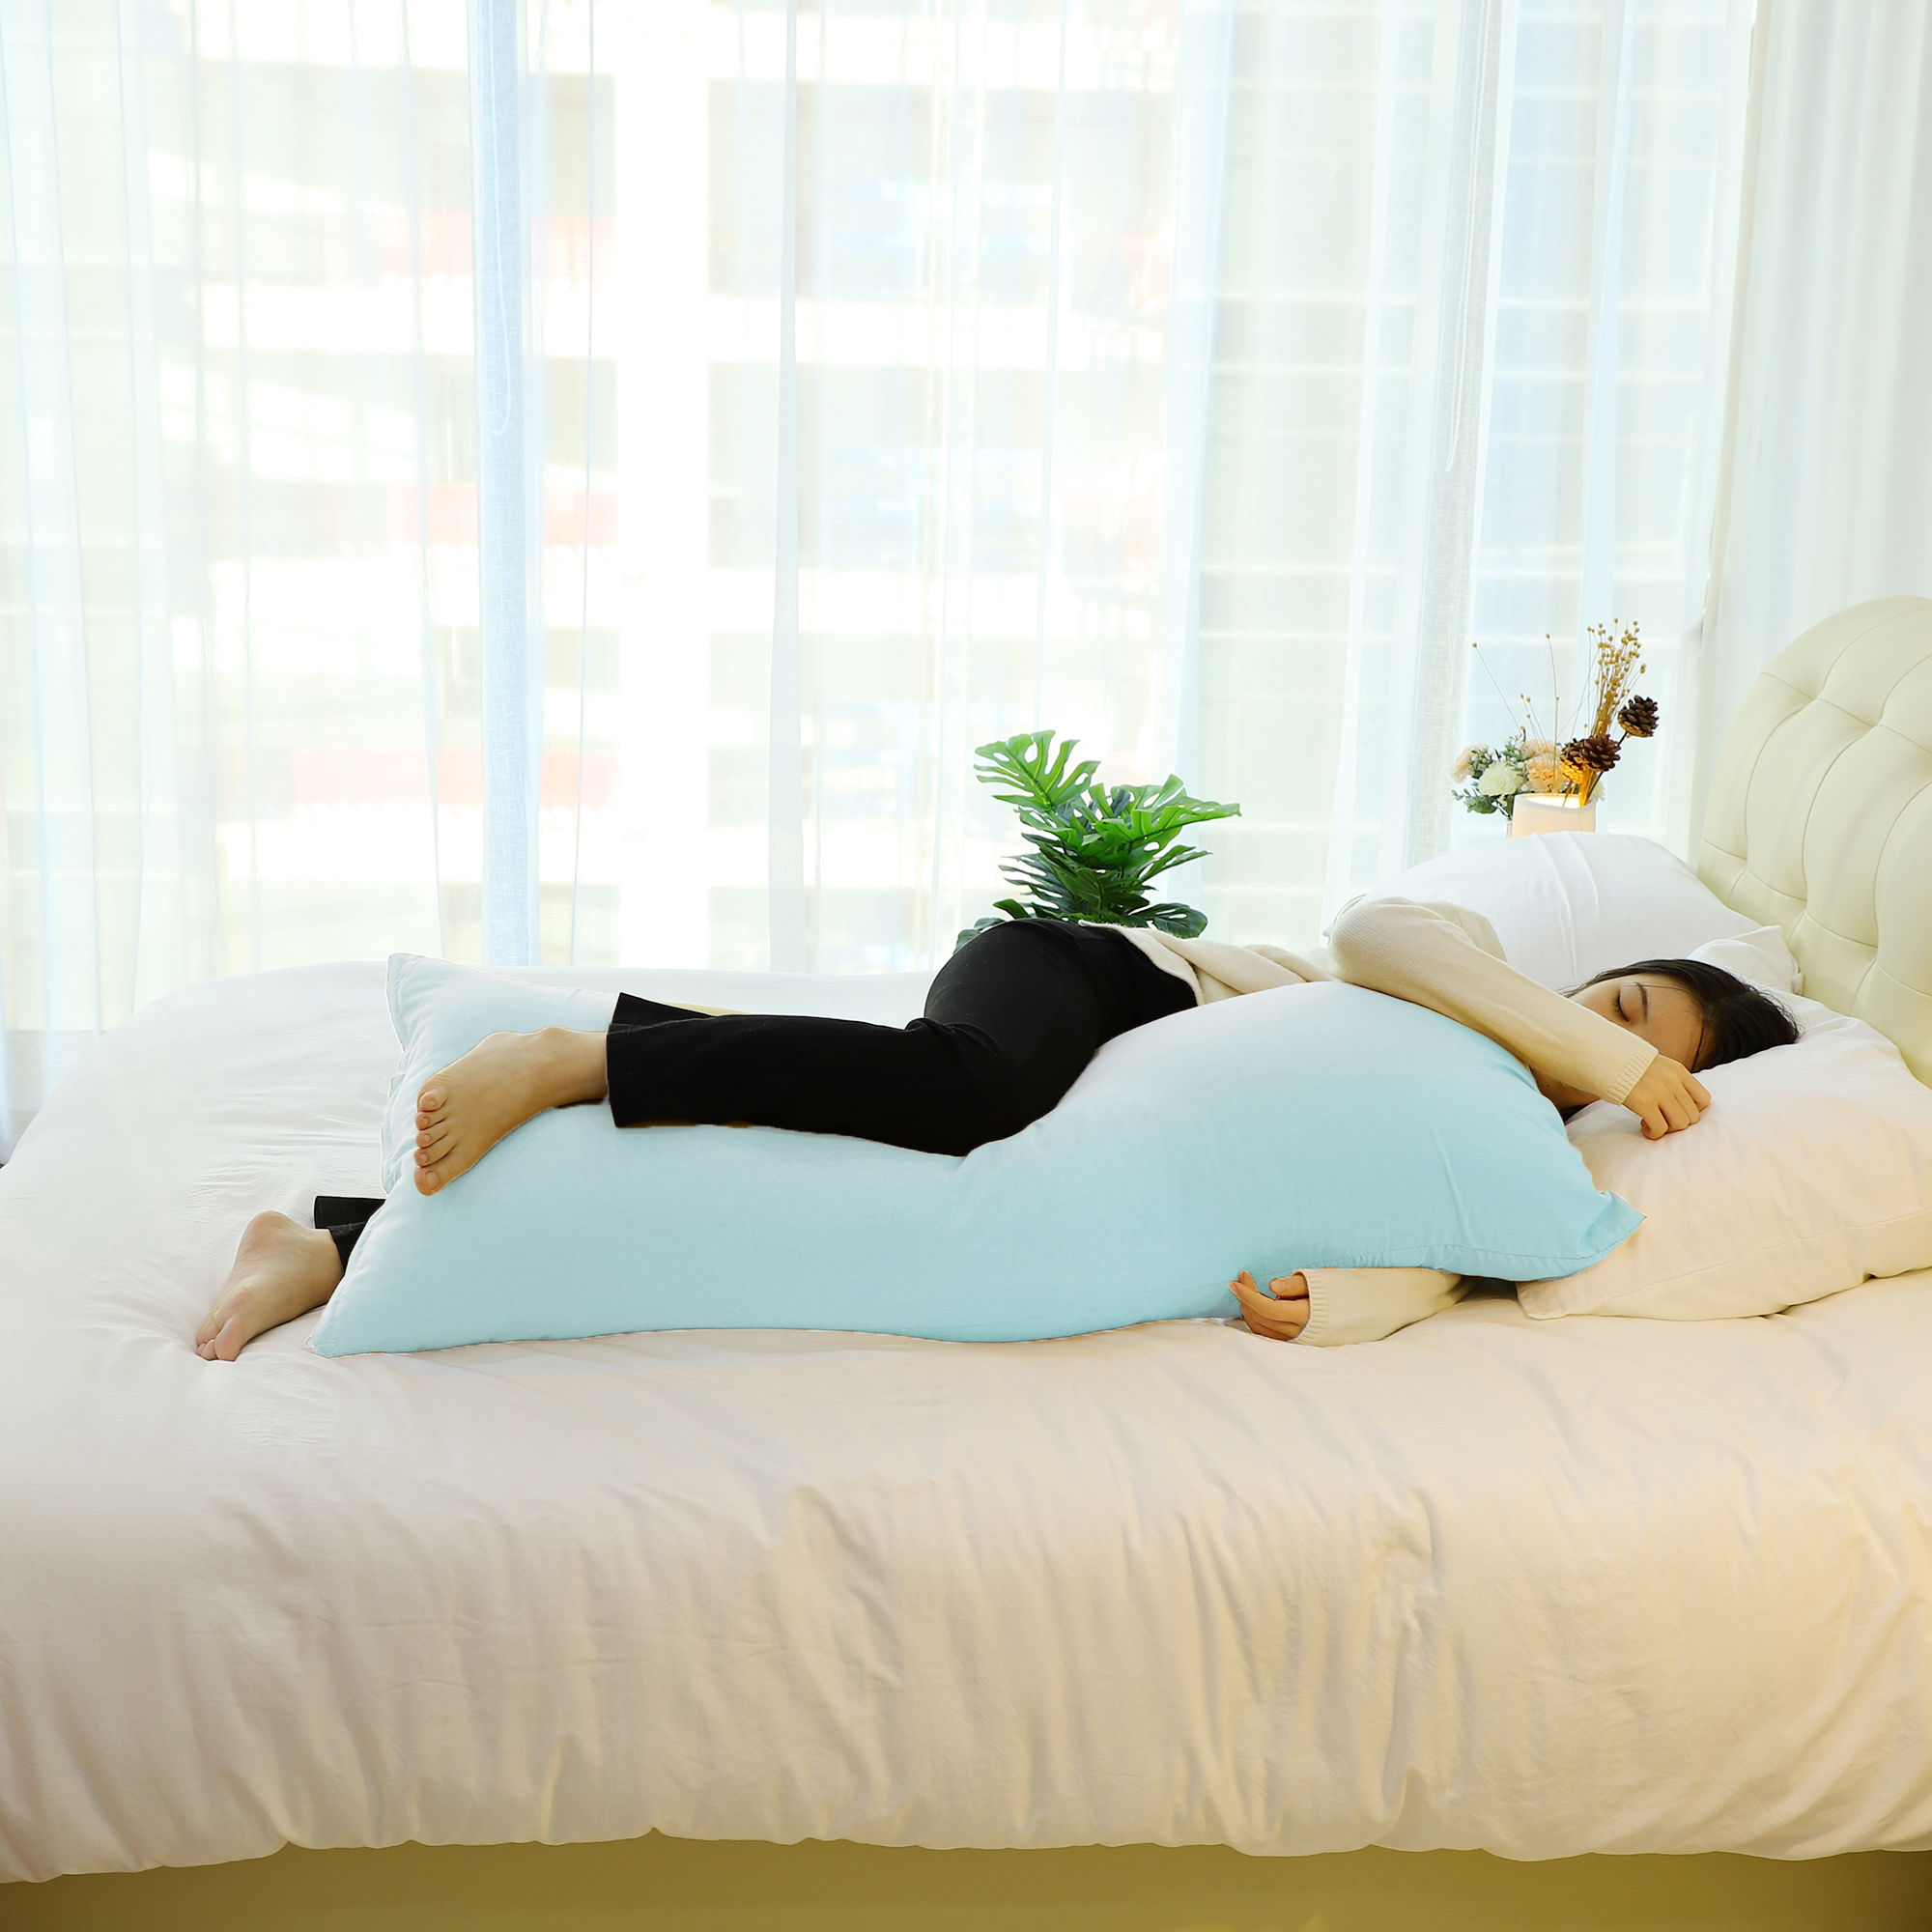 Zippered Body Pillow Cover Soft Microfiber Long Pillowcases Spa Blue 20x60 - image 3 of 8